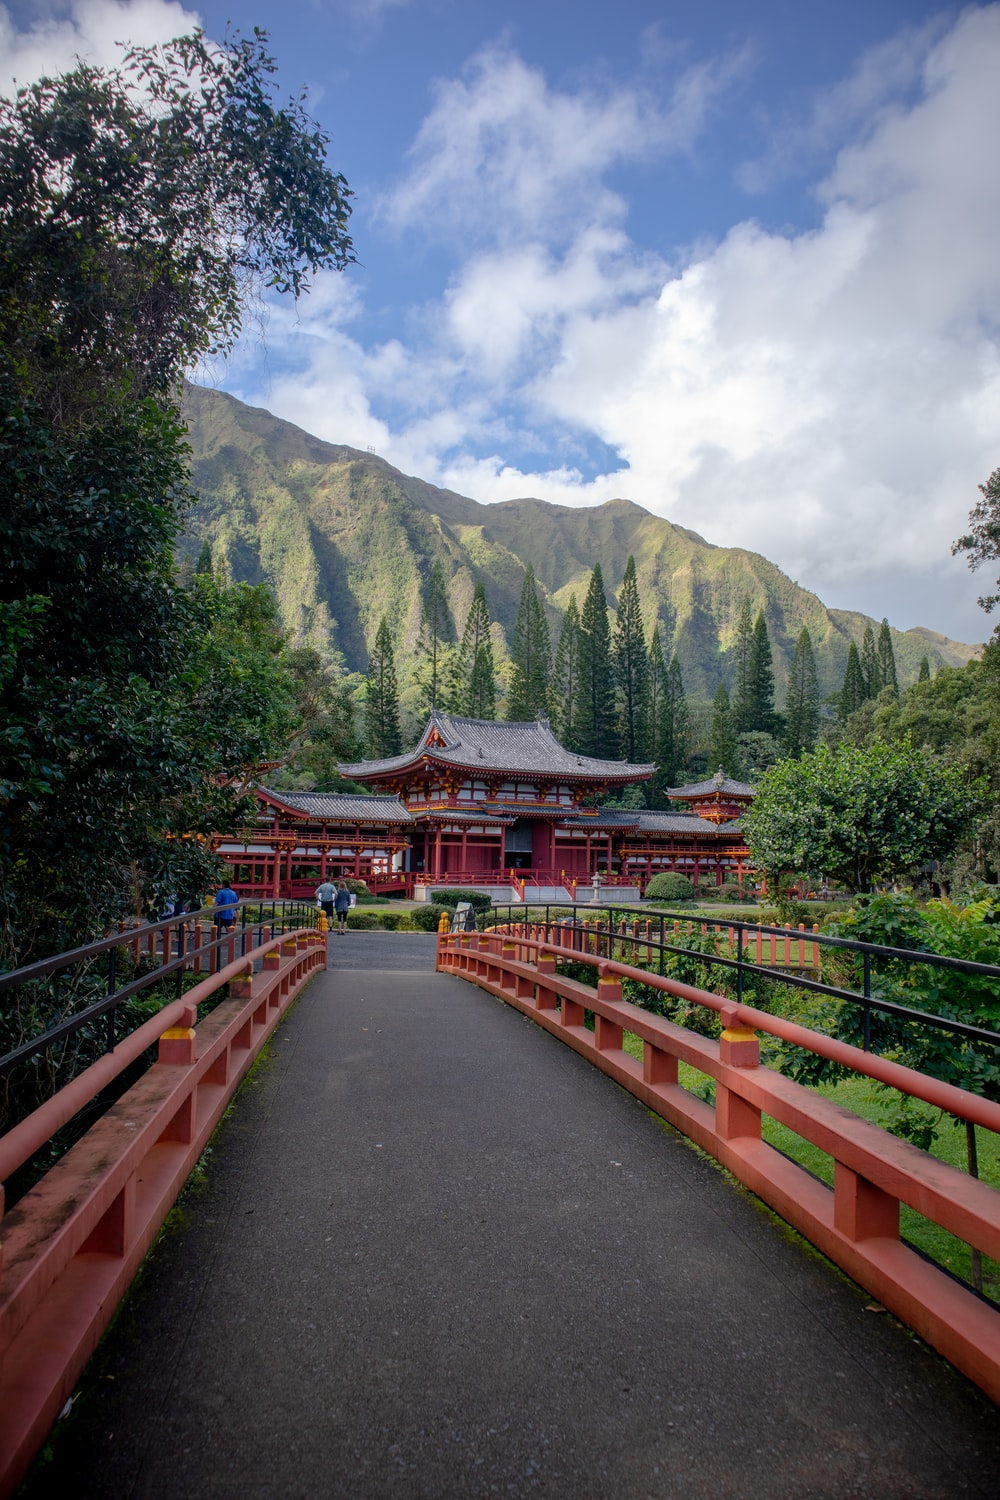 red and brown wooden bridge near green trees and mountain during daytime